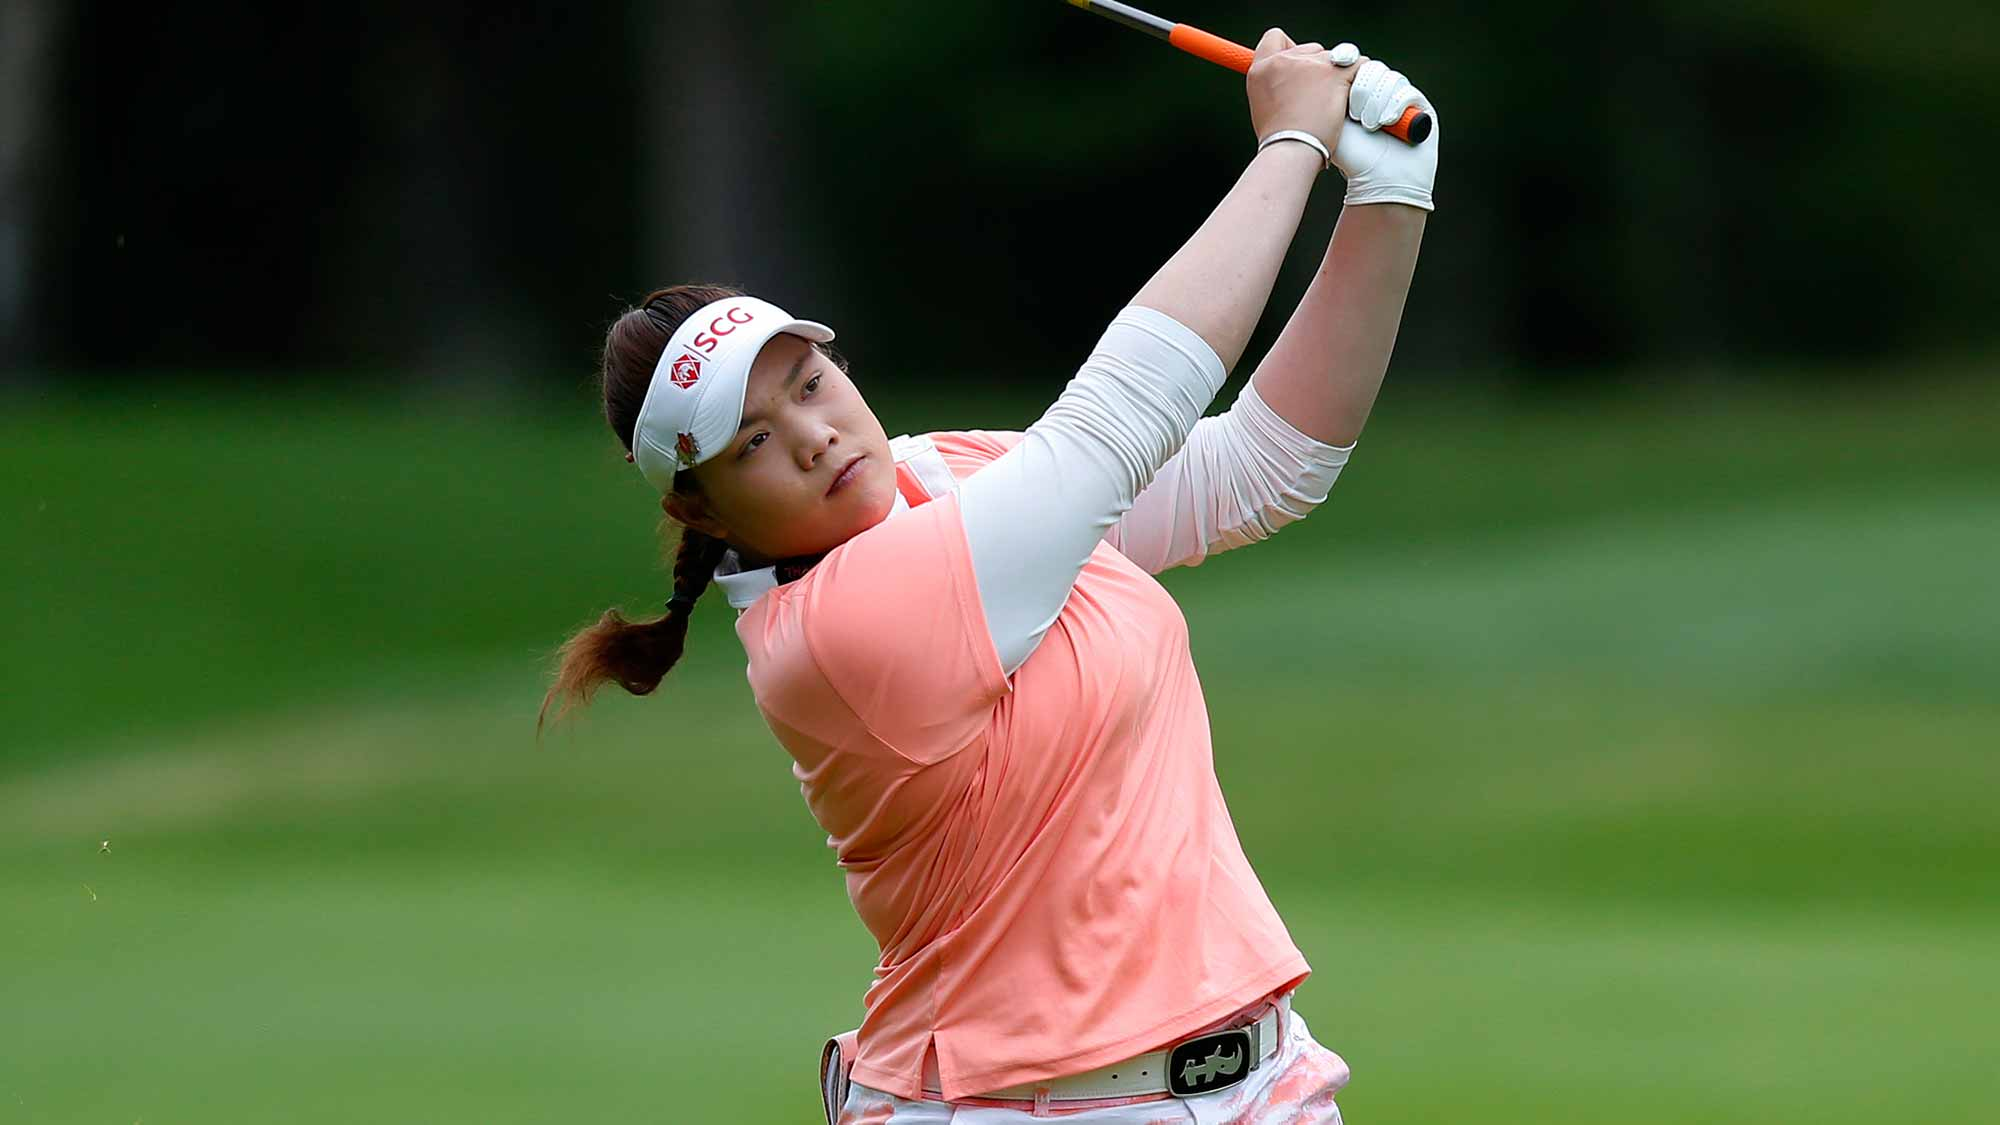 Ariya Jutanugarn of Thailand hits to the green on the 1st hole during the third round of the Canadian Pacific Women's Open at Priddis Greens Golf and Country Club